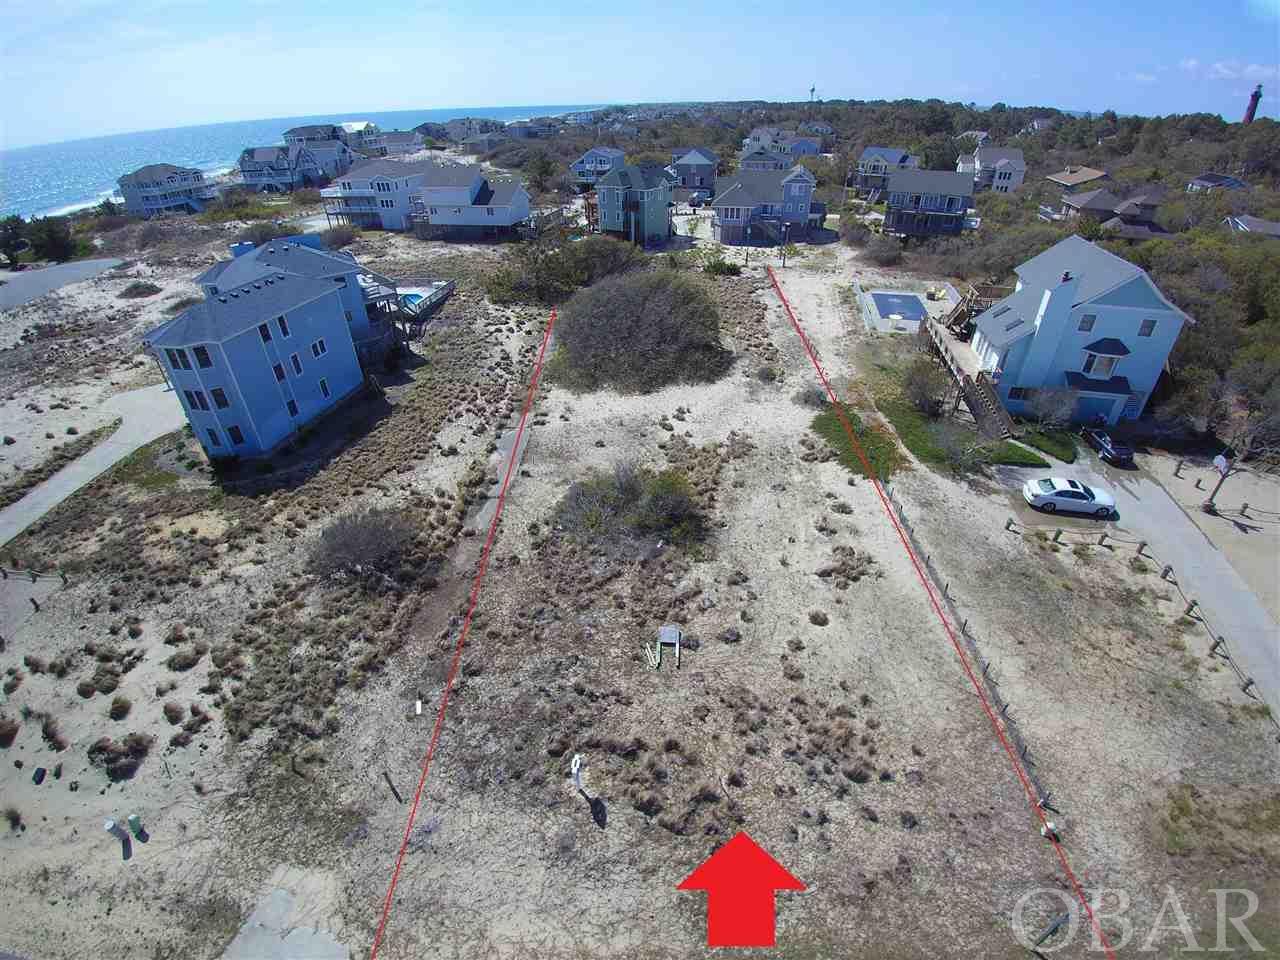 1204 Coral Lane,Corolla,NC 27927,7 Bedrooms Bedrooms,7 BathroomsBathrooms,Residential,Coral Lane,99886